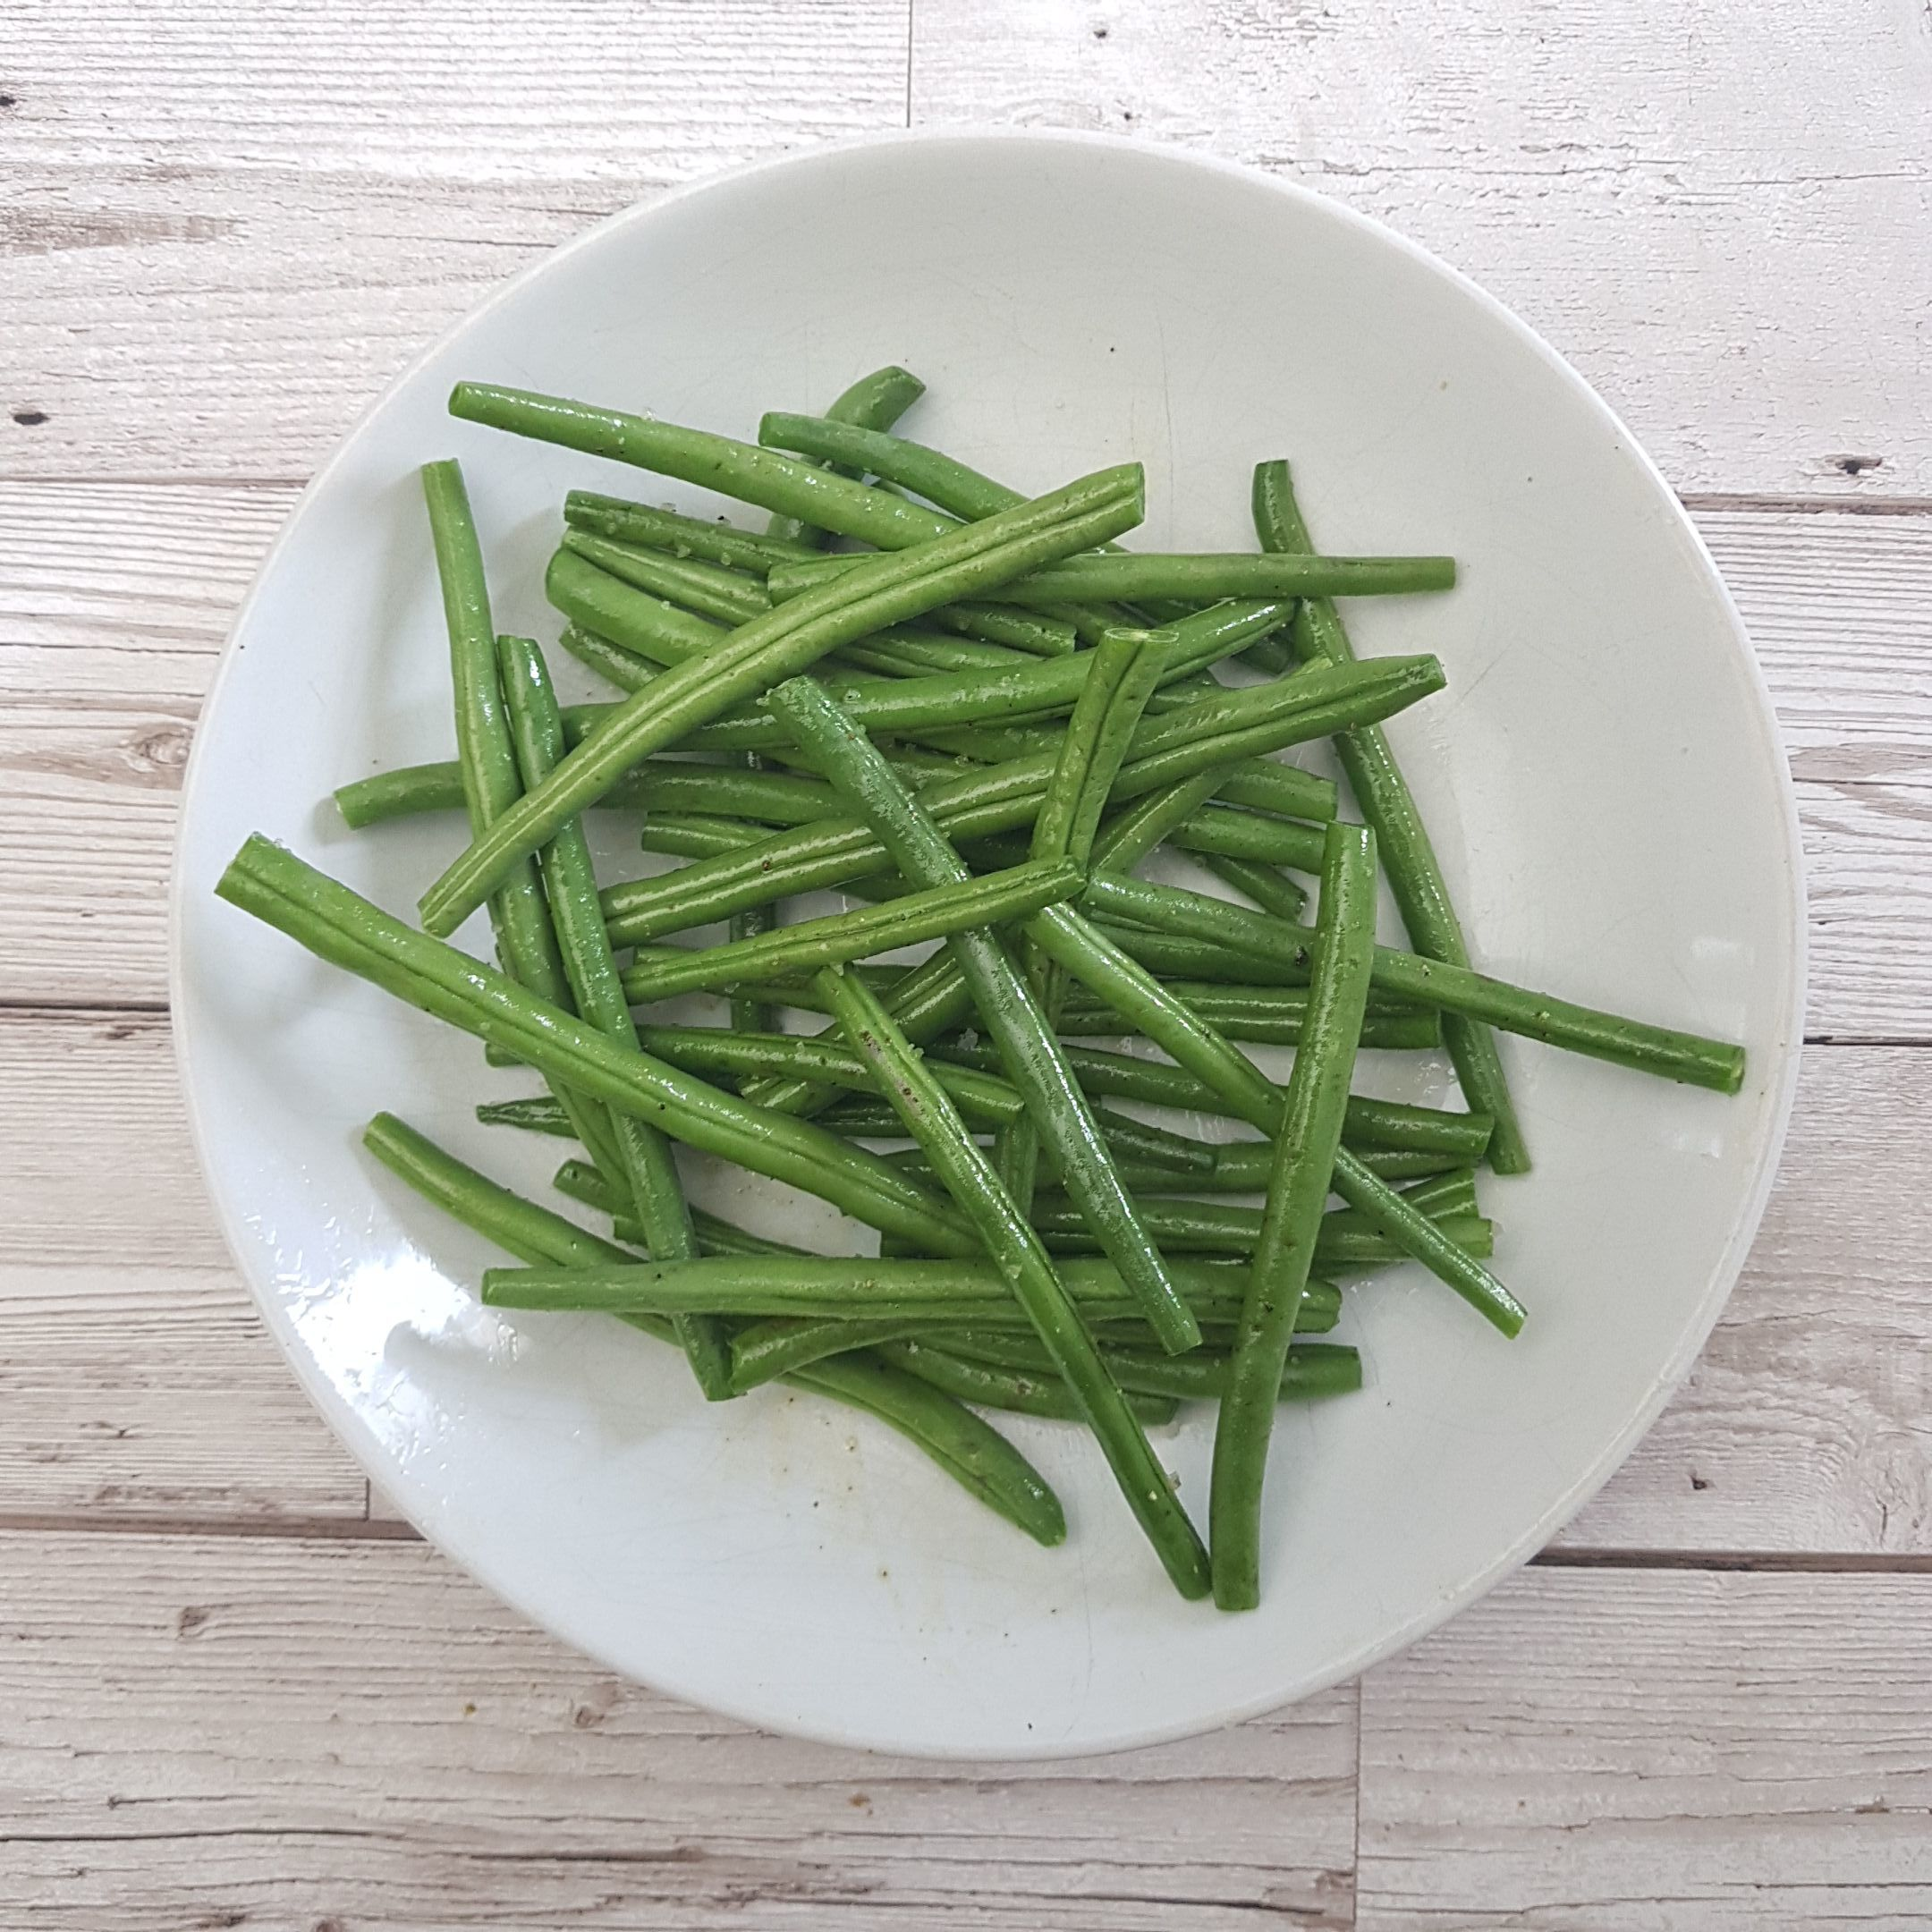 Meanwhile, toss the green beans in a tsp olive oil and a good pinch salt and pepper